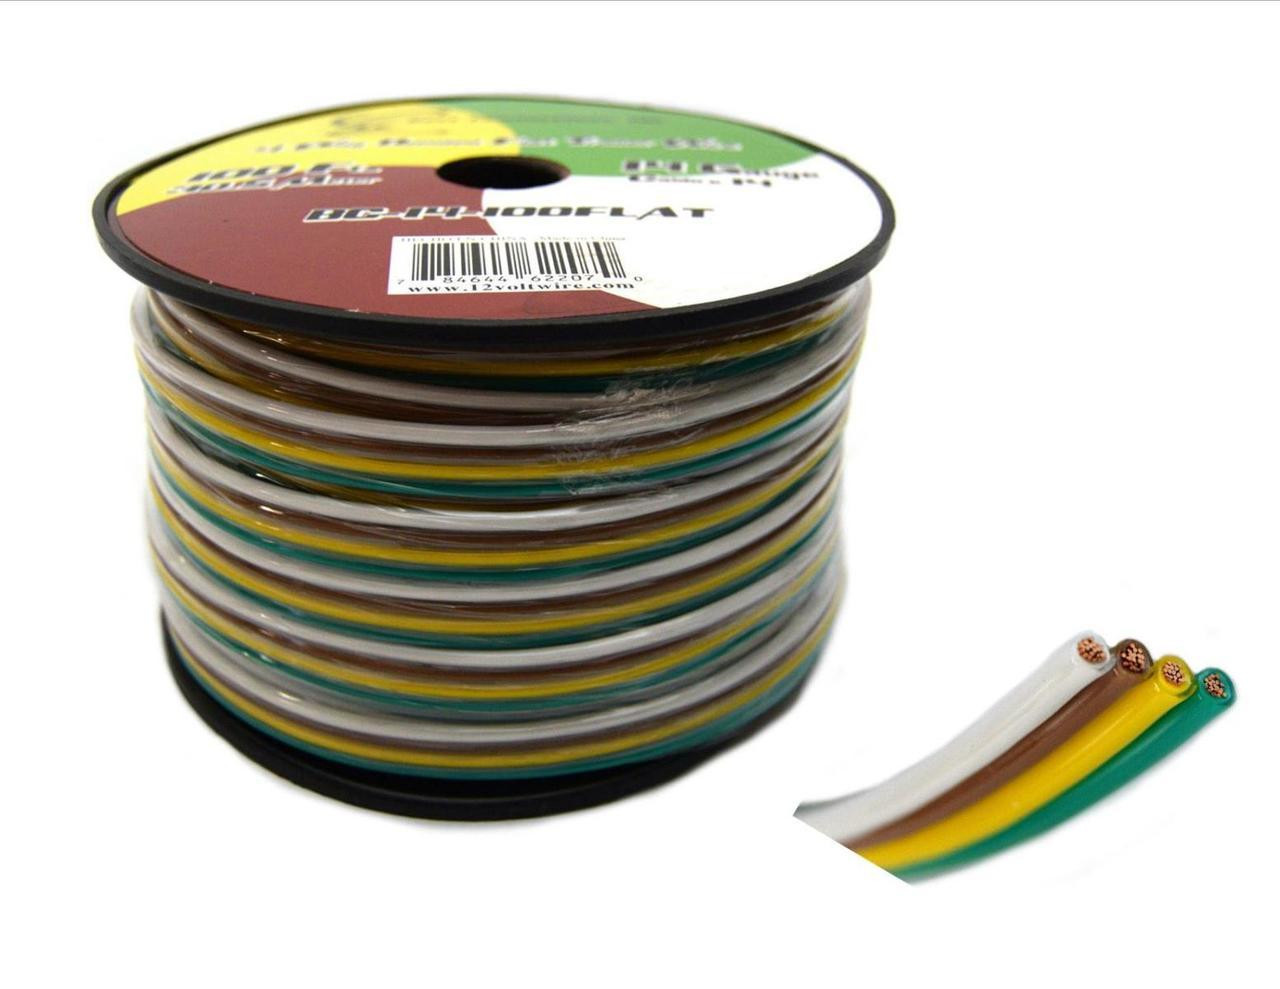 hight resolution of flat trailer light cable wiring harness 100 feet 14 awg 4 wire cca